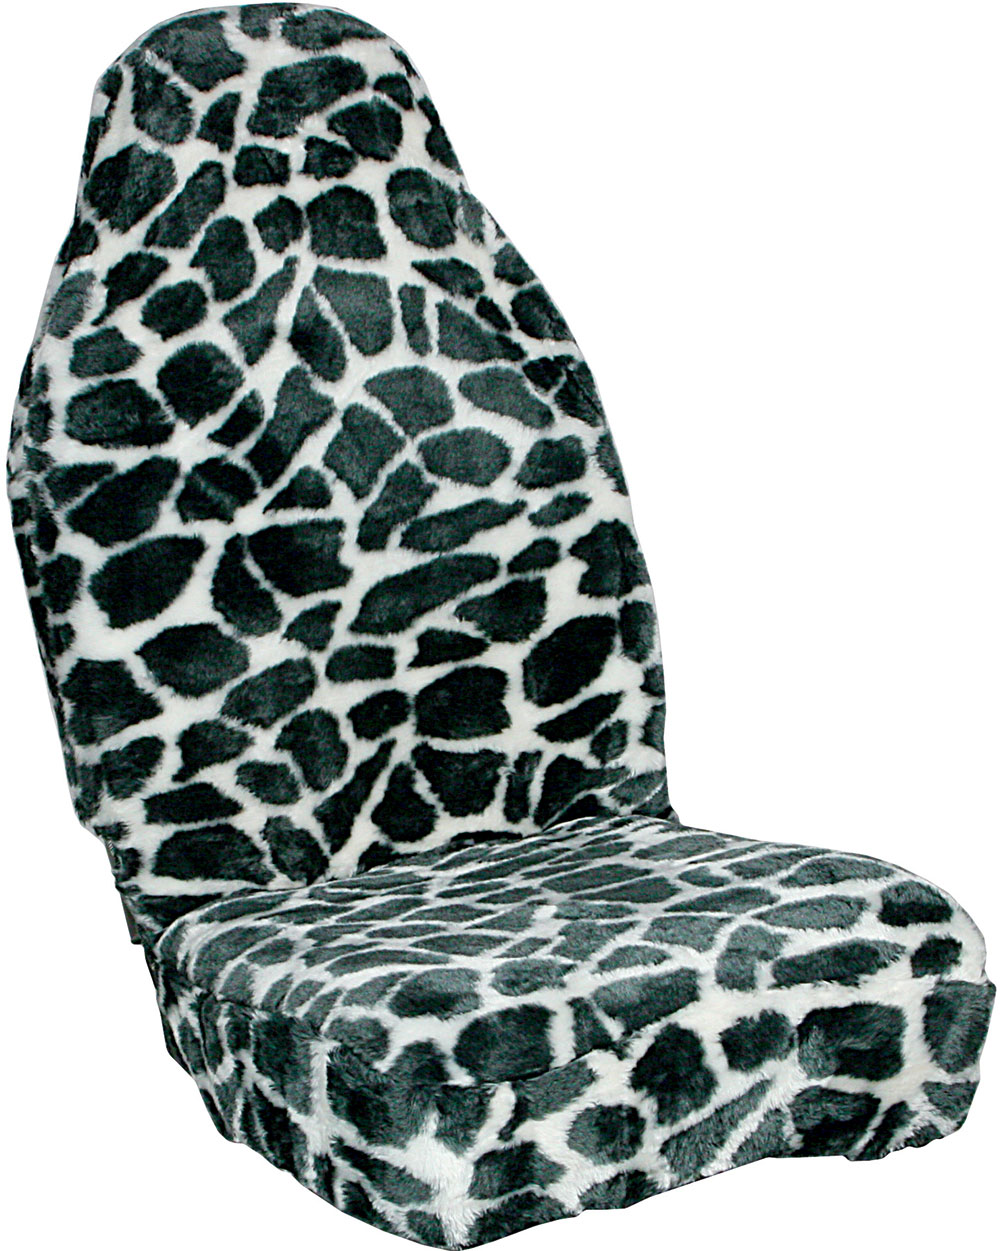 Giraffe Seat Covers | Seat Covers Unlimited